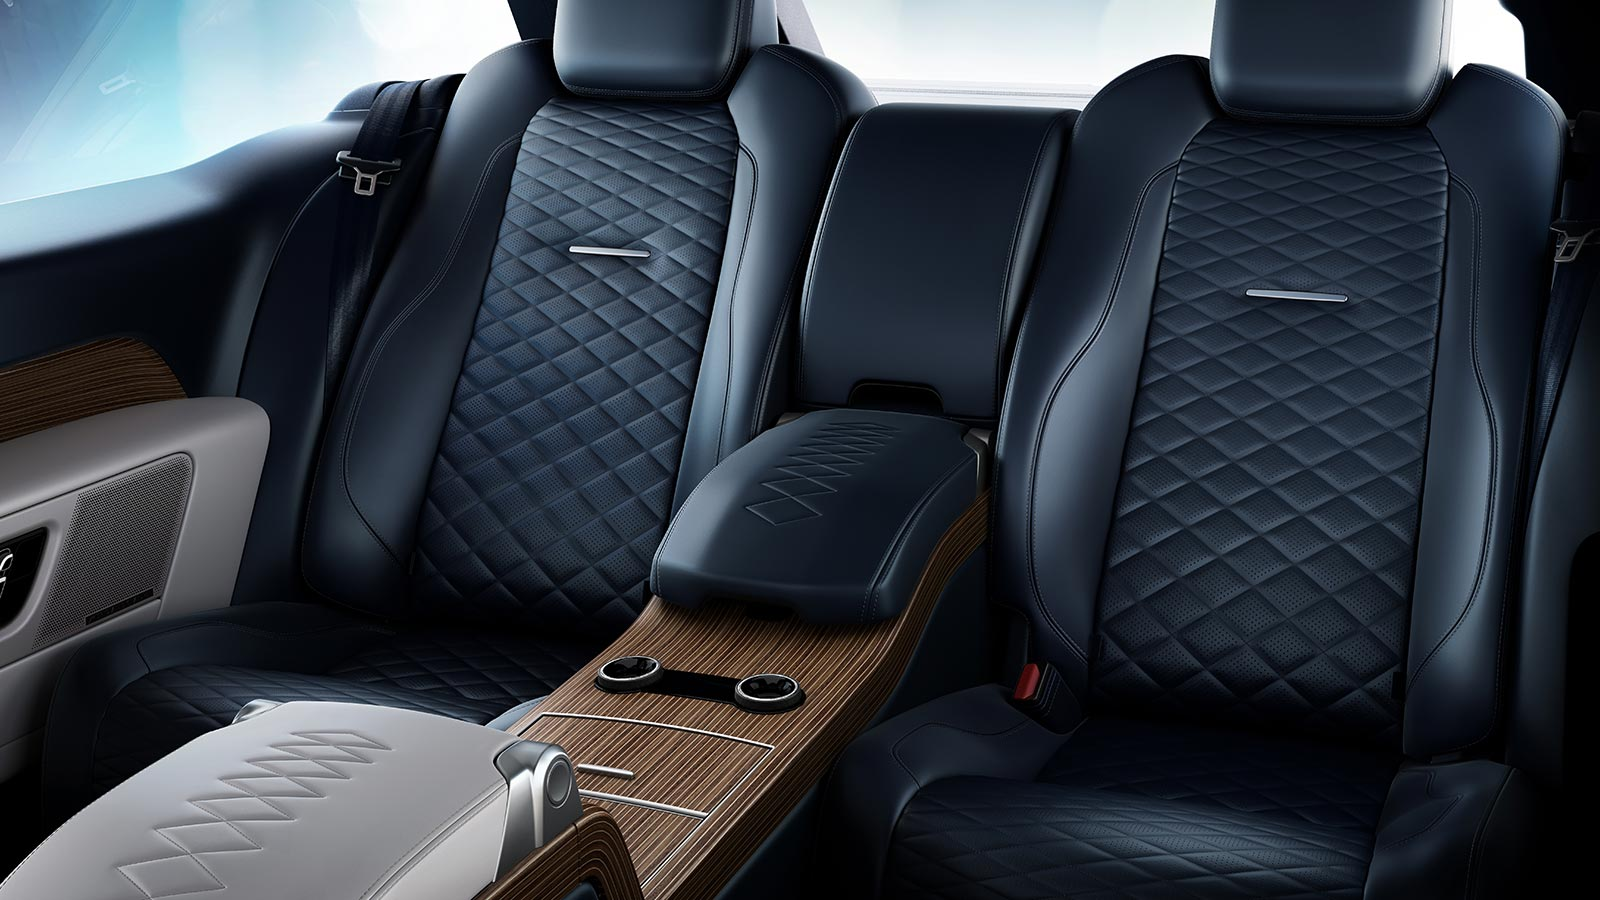 The Range Rover SV Coupé rear seats in Eclipse with unique Diamond Quilted design